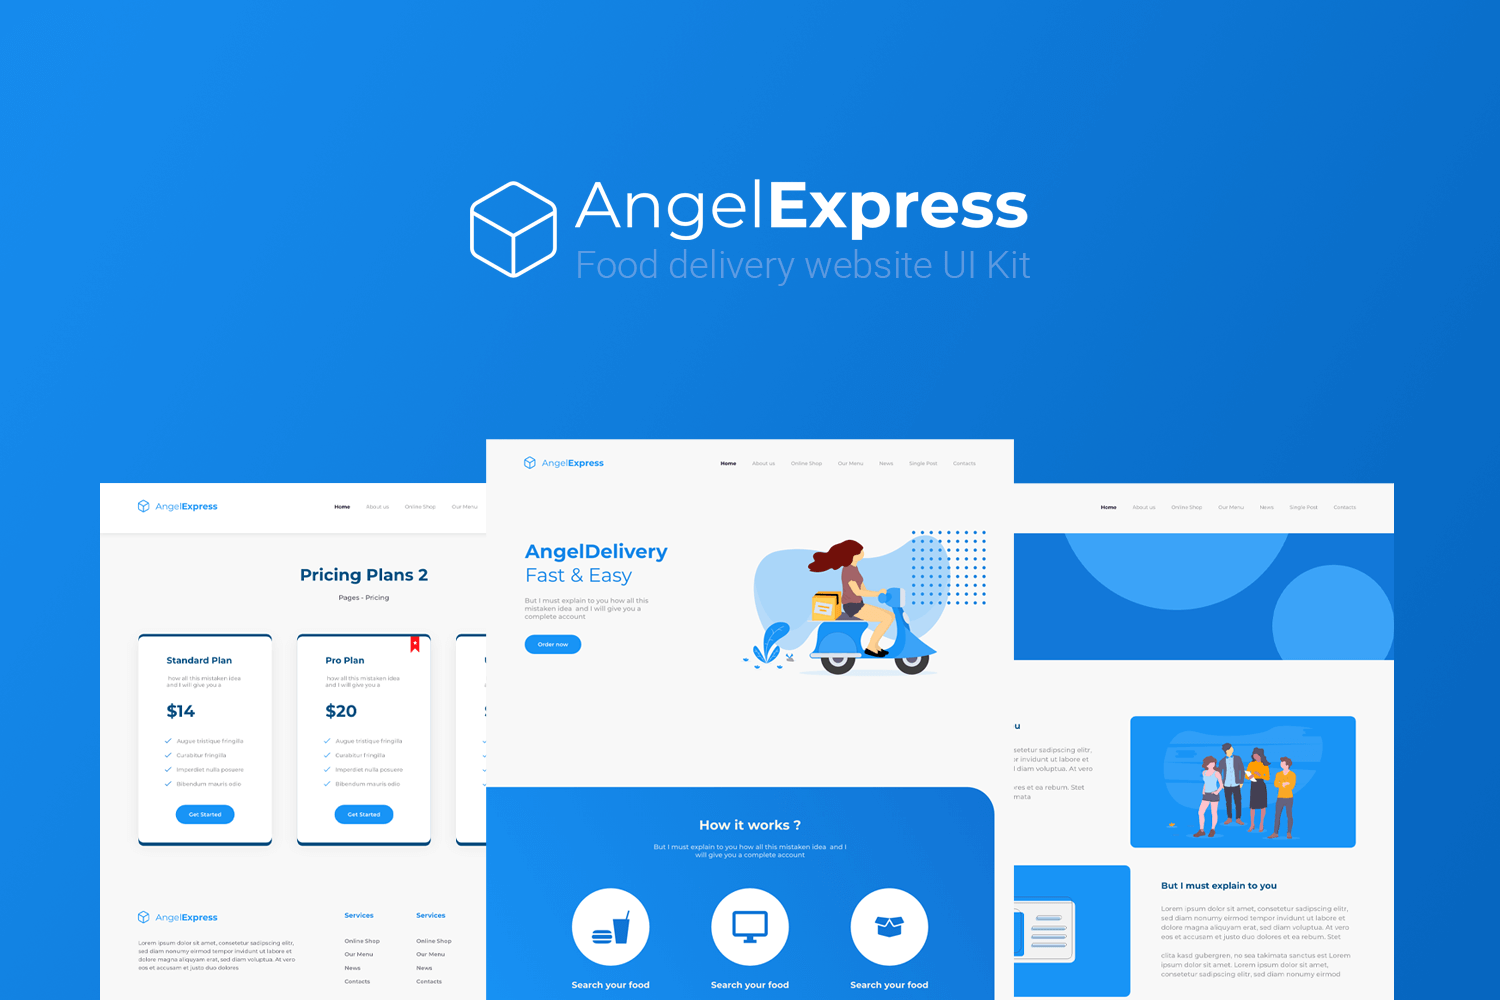 Angel Express - A Food Delivery Website UI Kit